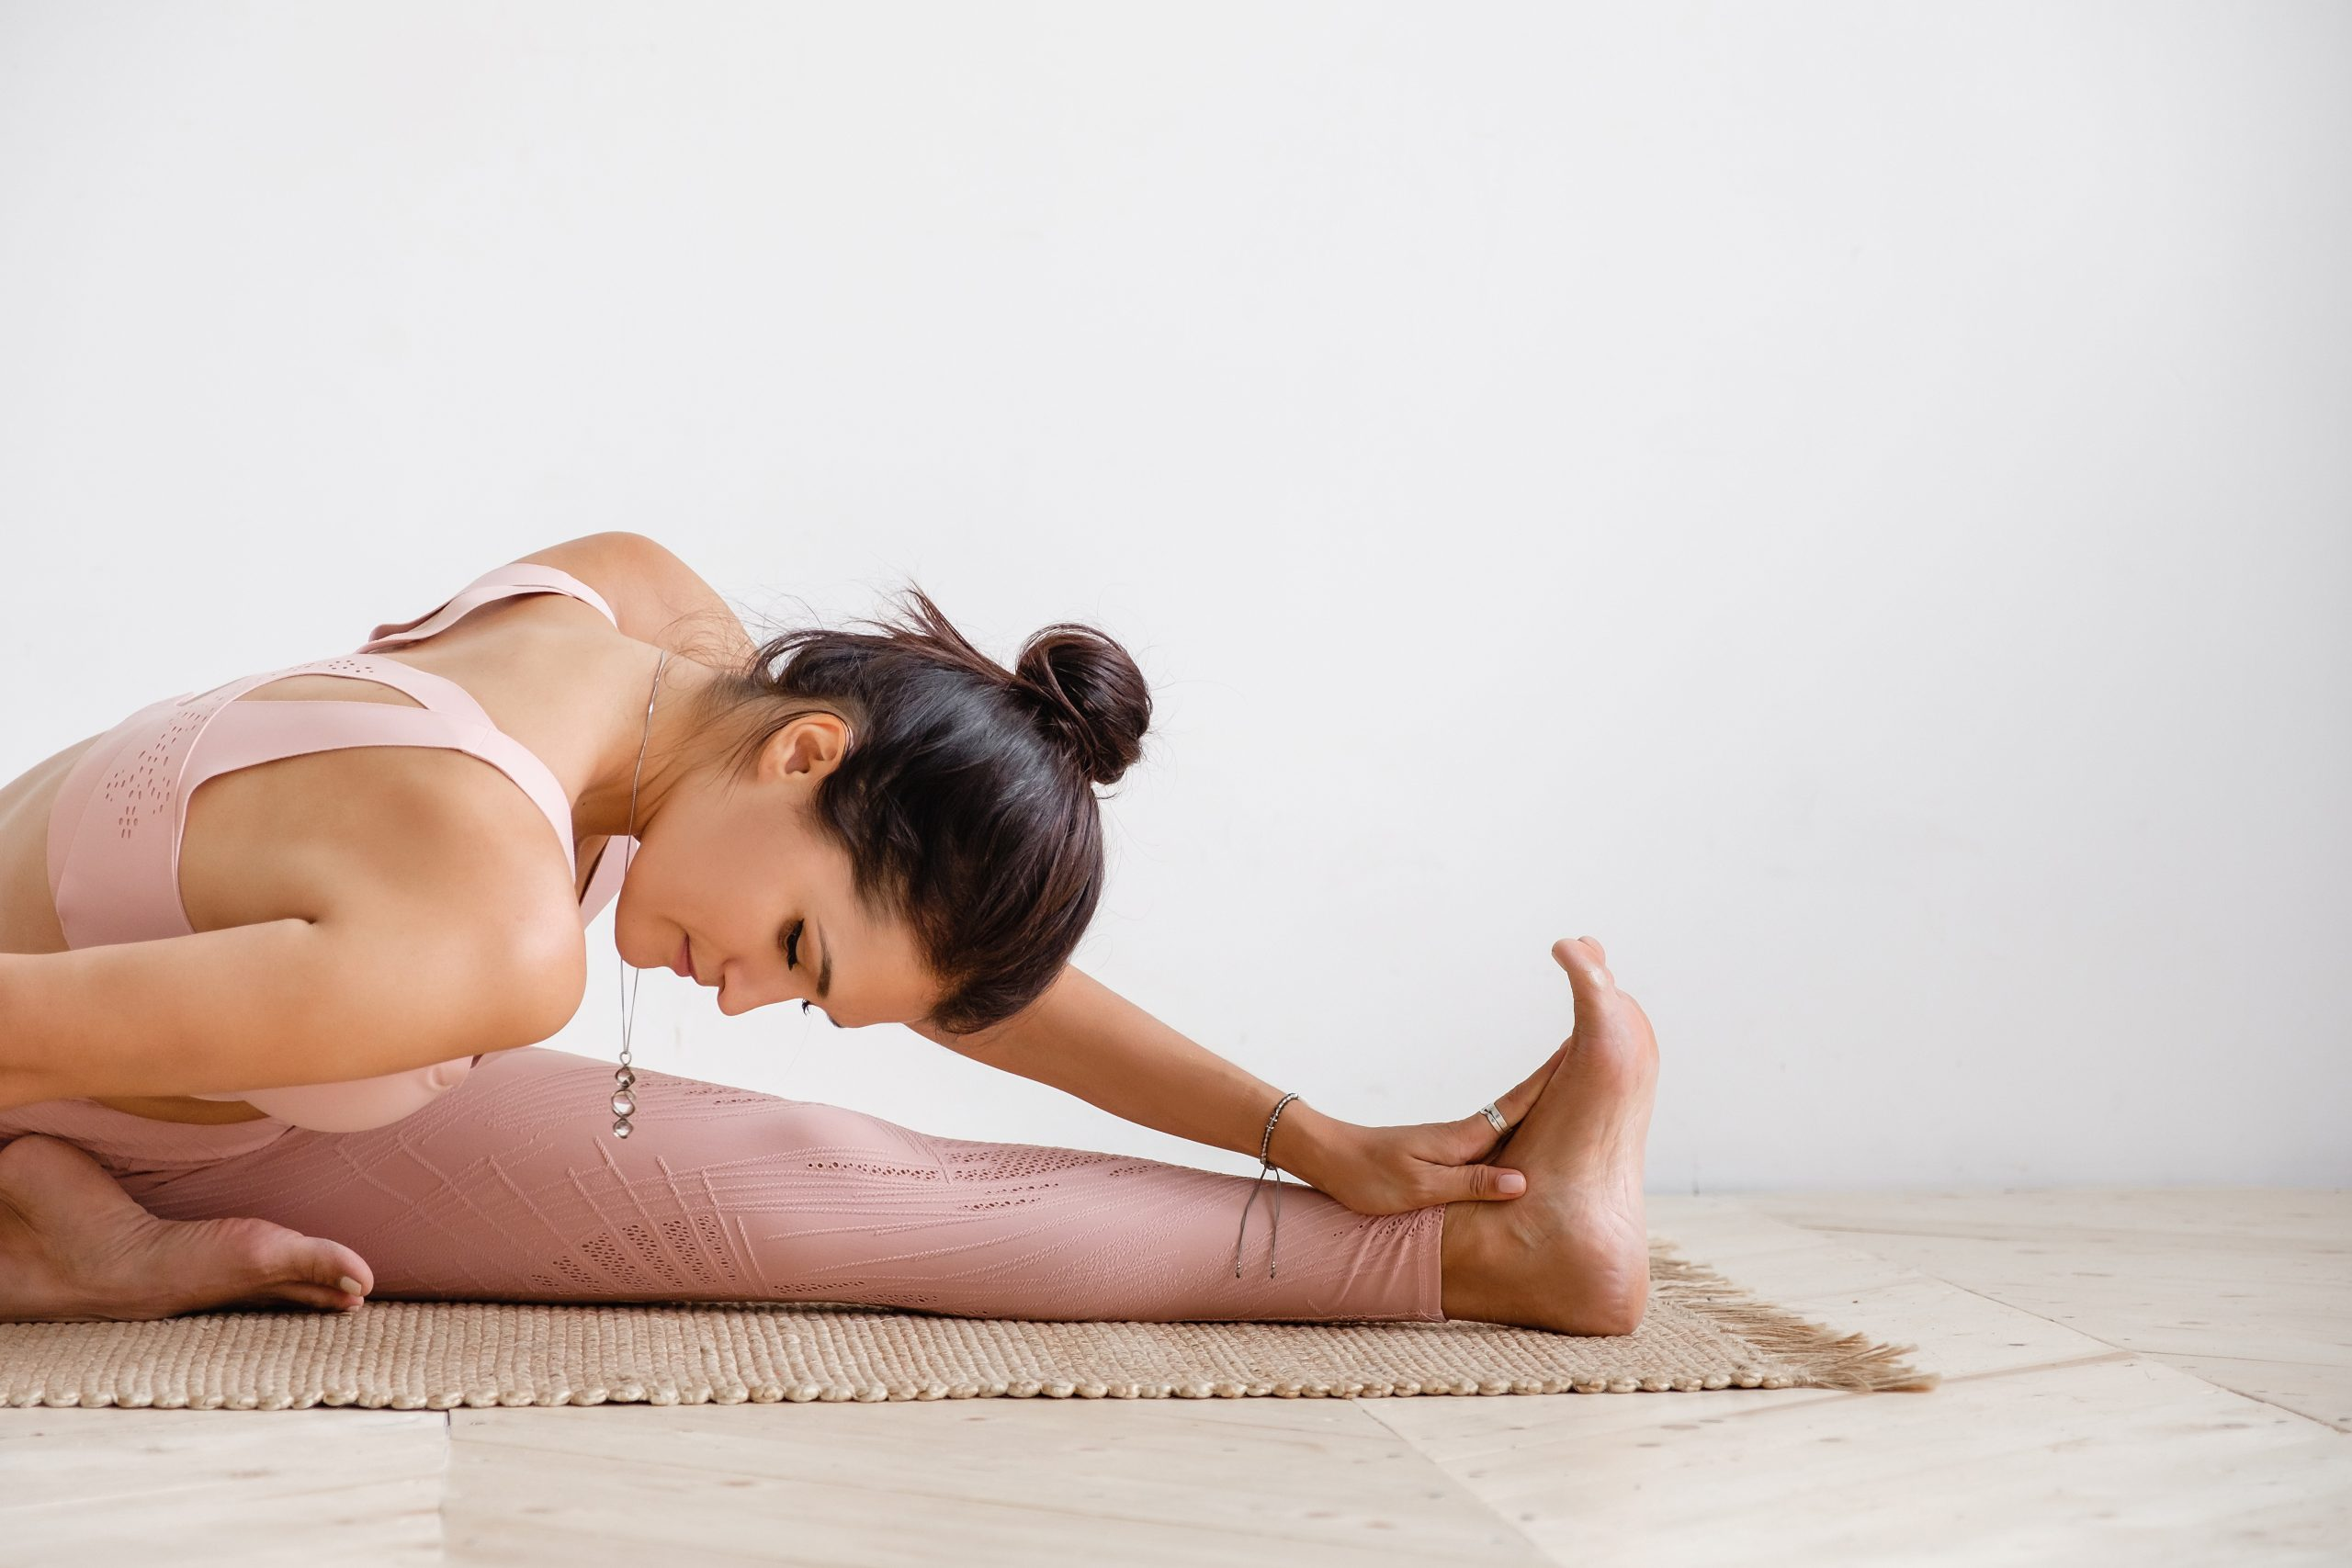 Close-up of a pacified young well-groomed brunette woman doing stretching while doing Pilates exercises sitting on a rug in a pink gymnastic suit on a white background. Place for advertising